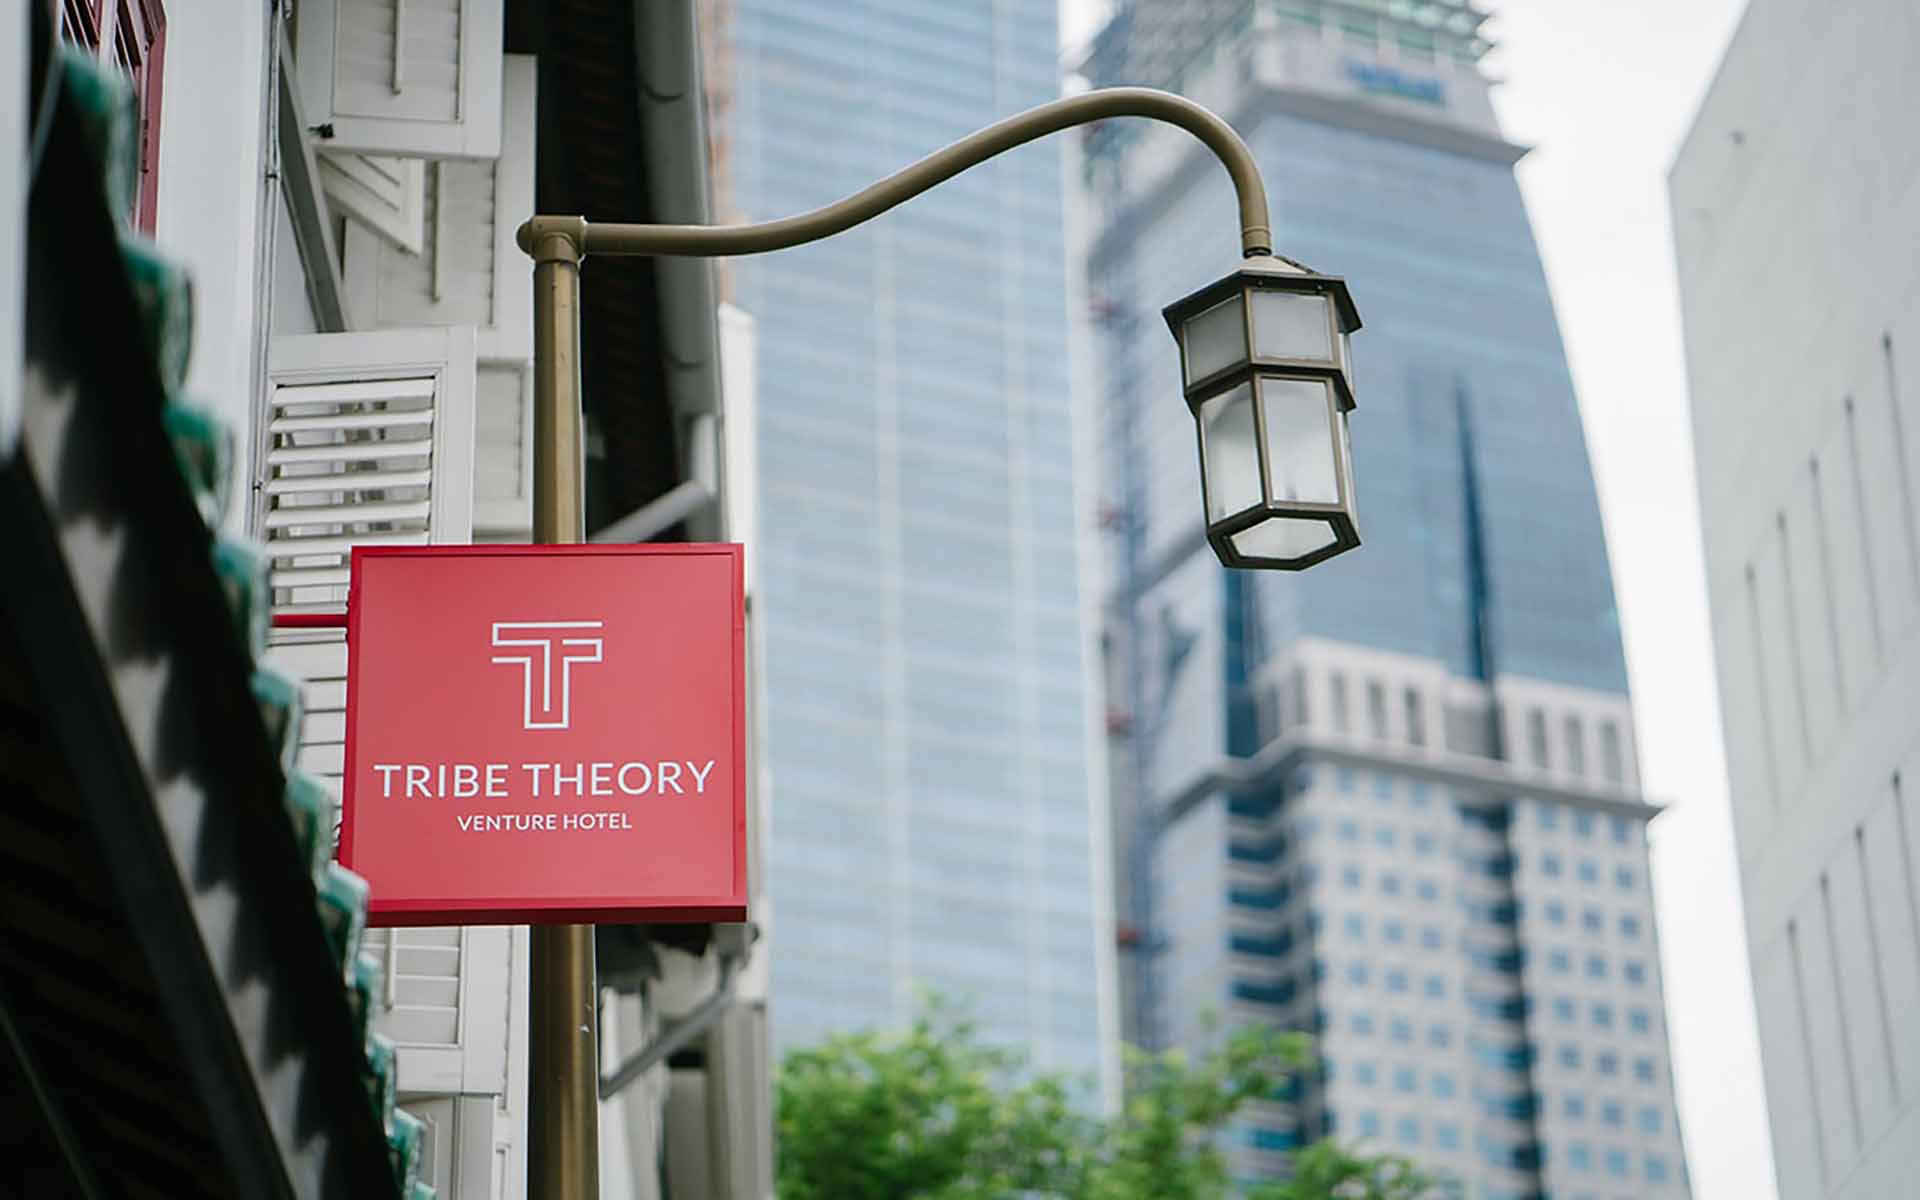 Entrepreneurs-Only Venture Hotel Tribe Theory to Accept Bitcoin, Ethereum